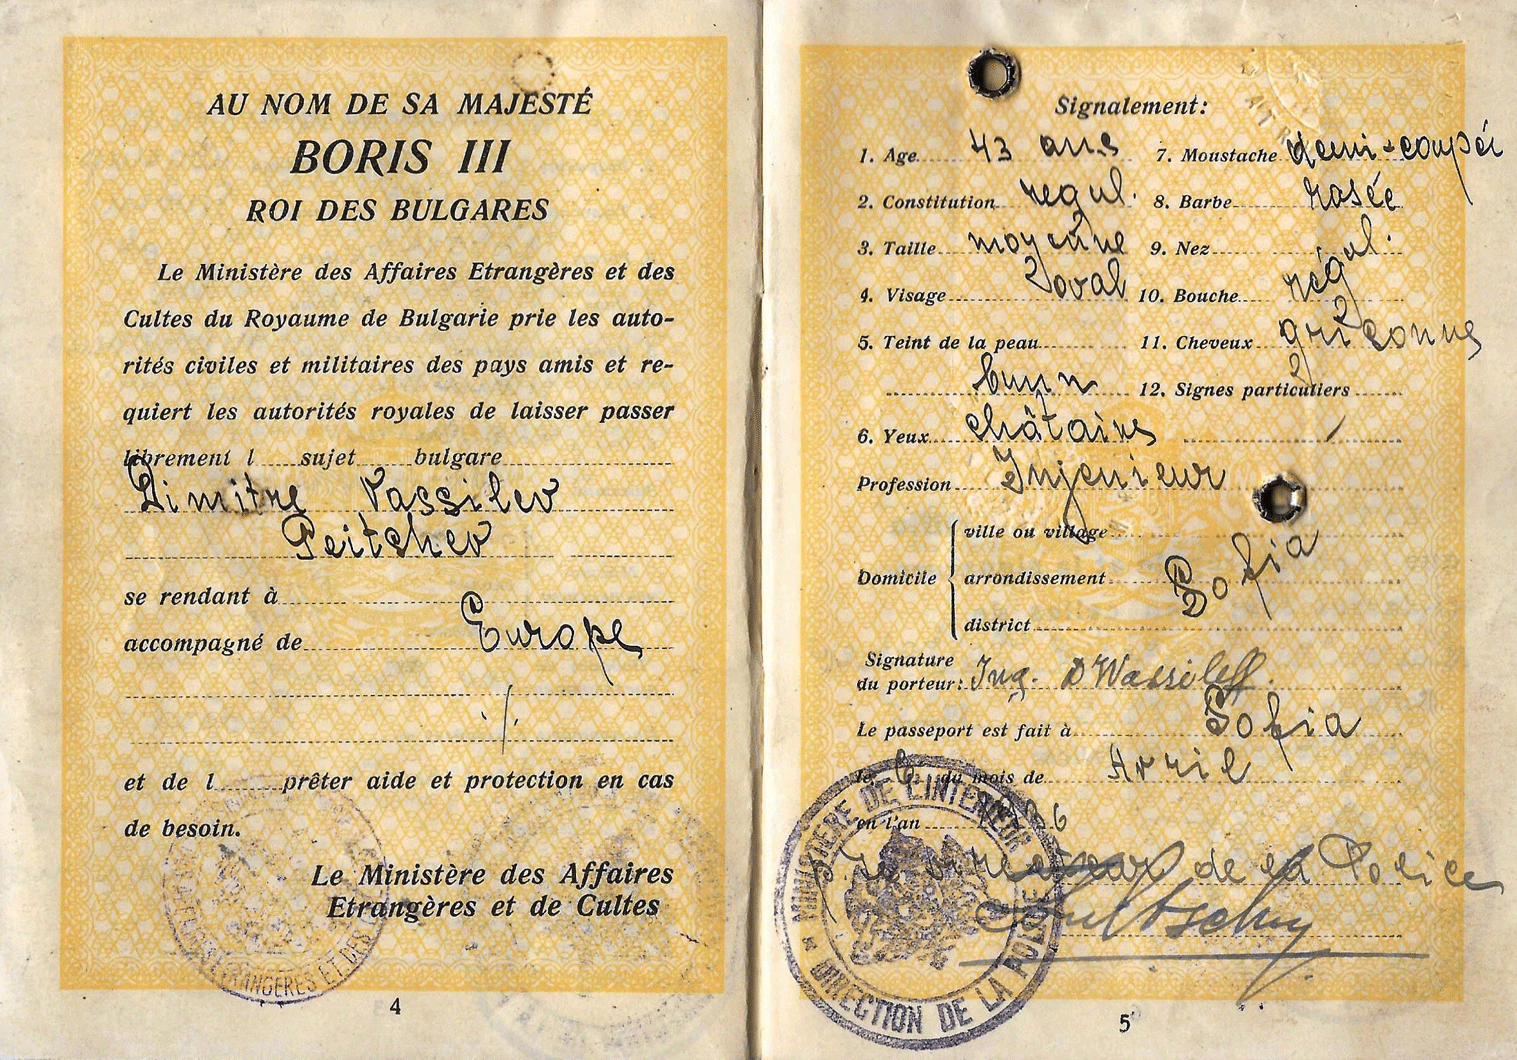 1936 Bulgarian service passport